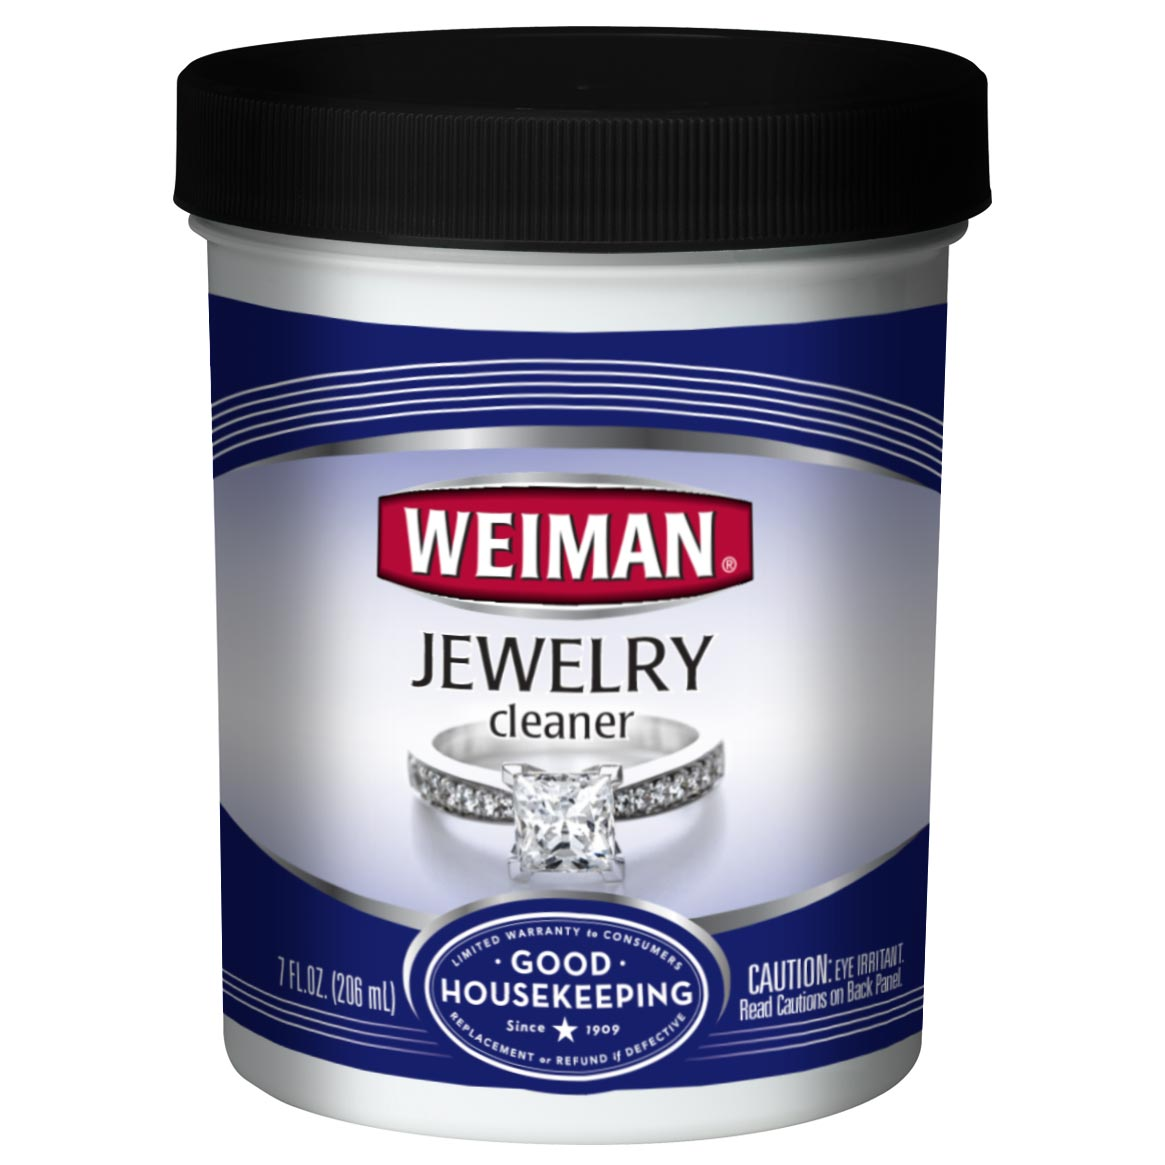 https://googone.com/media/catalog/product/w/e/weiman-jewelry-cleaner_front_1.jpg